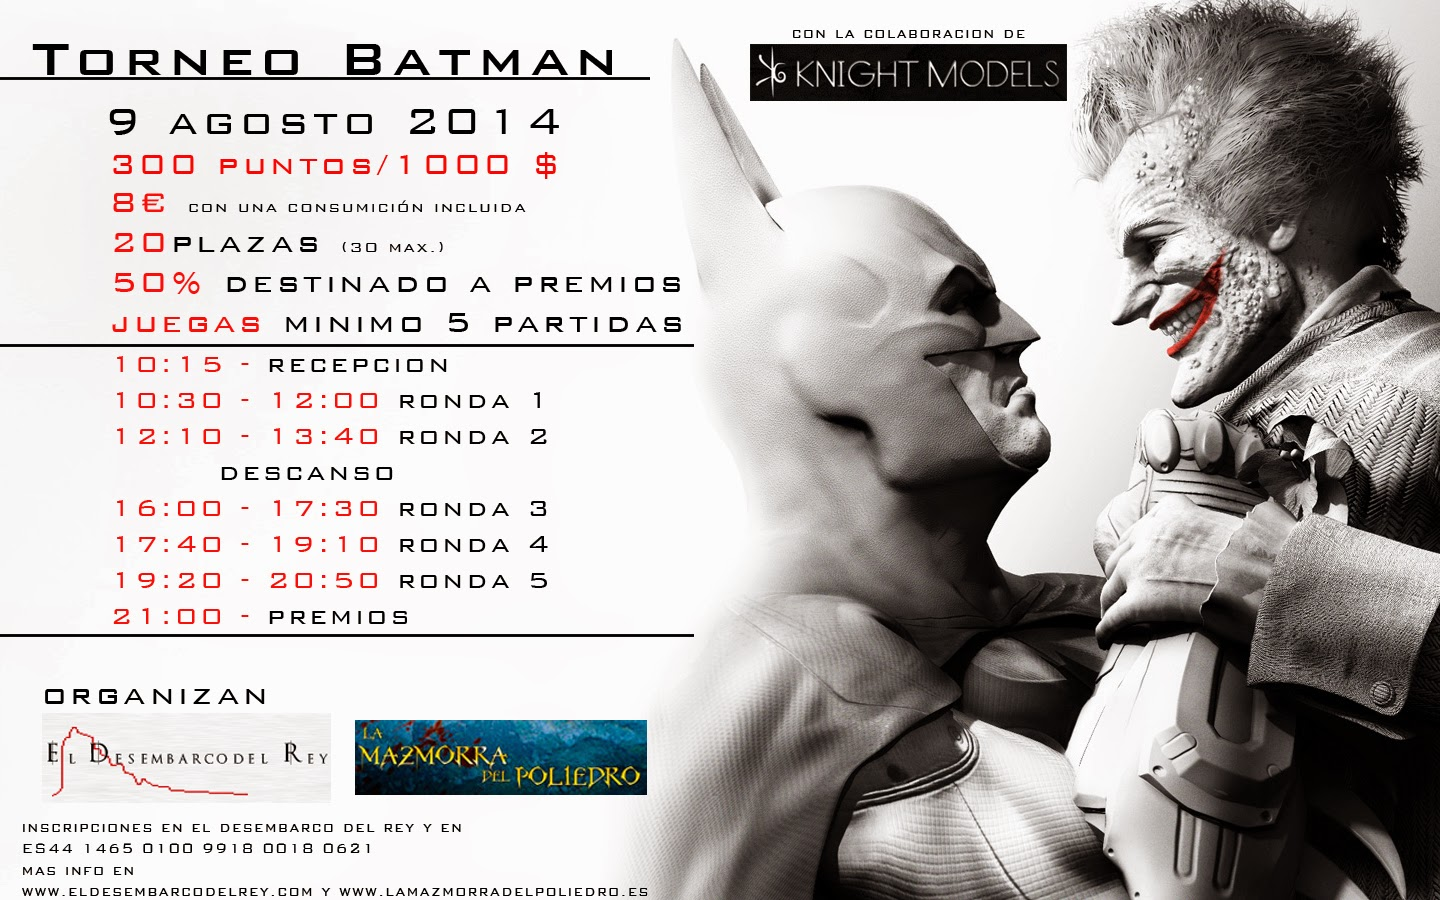 torneo batman miniature game-knight models- malaga- torneo 300 puntos